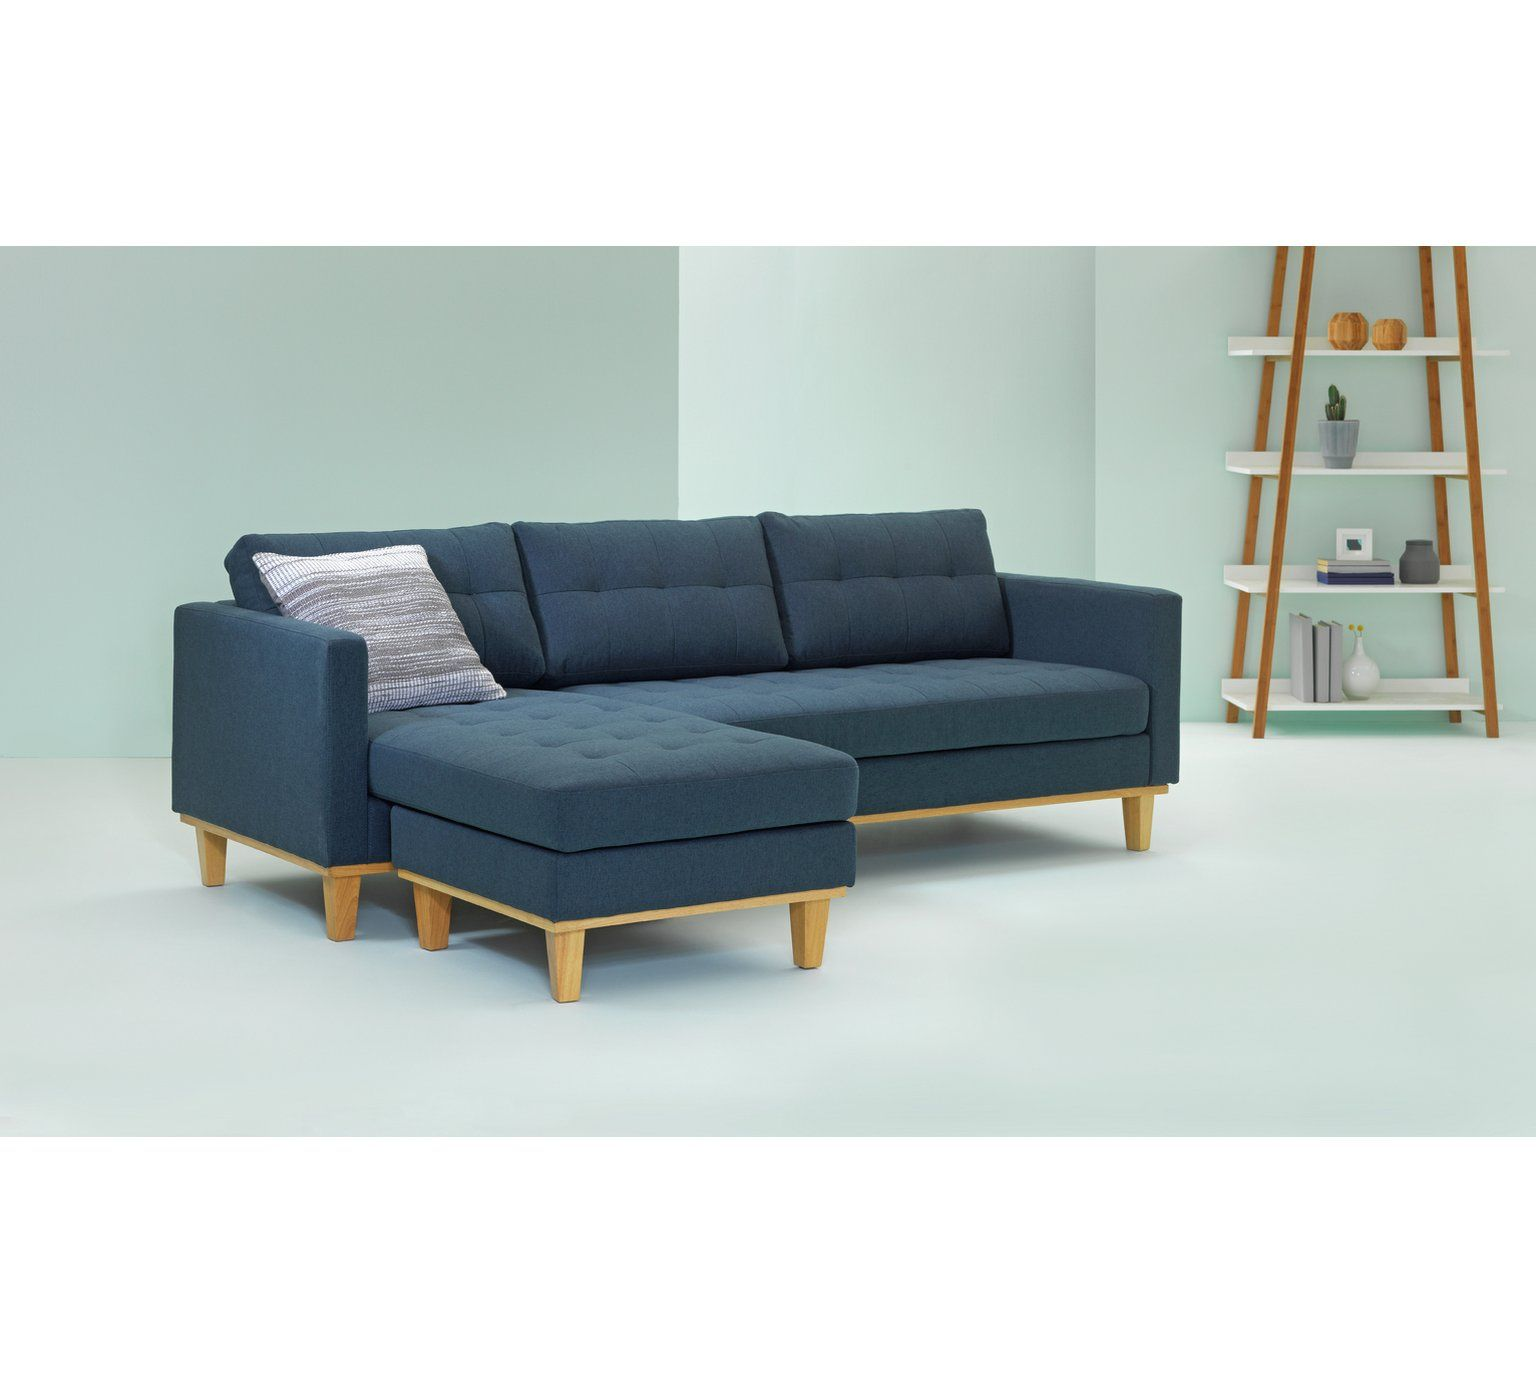 Buy Hygena Aliso Reversible Corner Chaise Sofa - Denim Blue at Argos ...